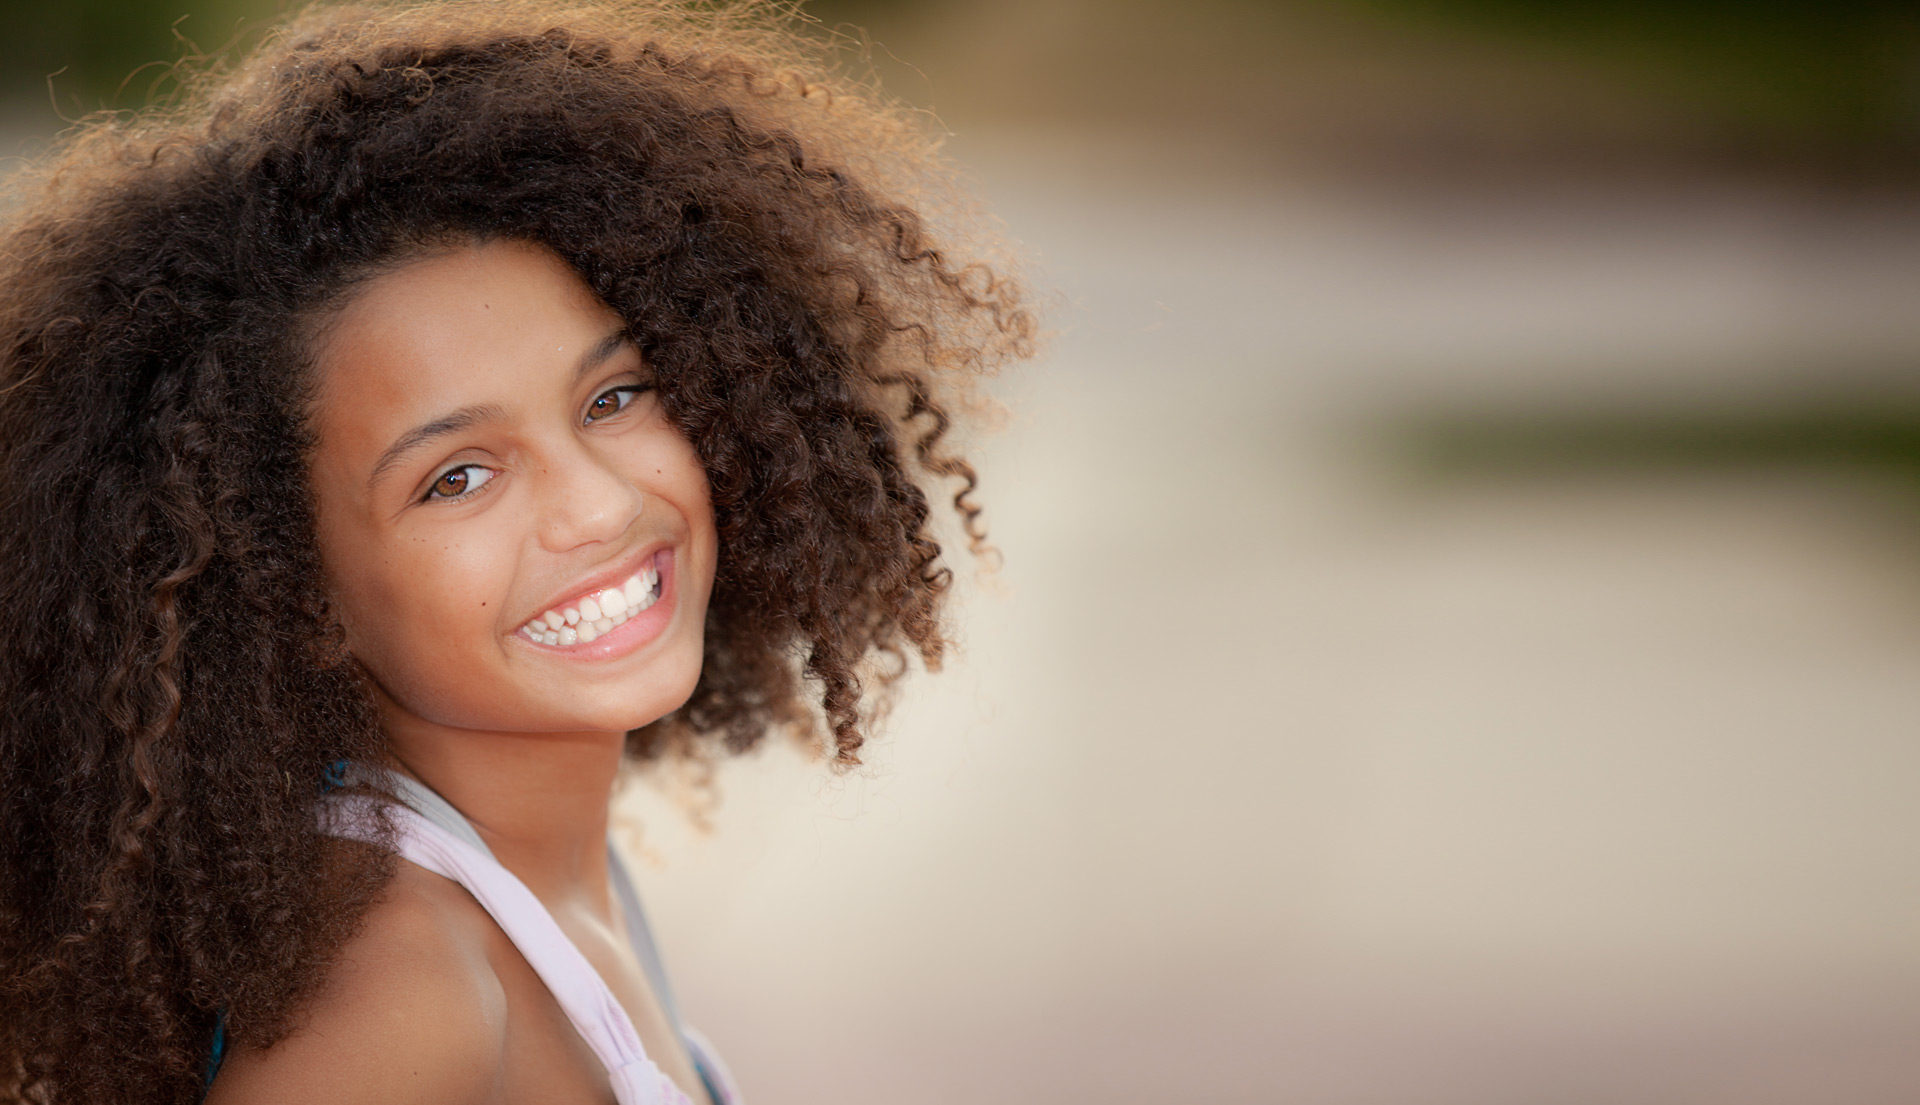 Young African American girl smiling with healthy teeth